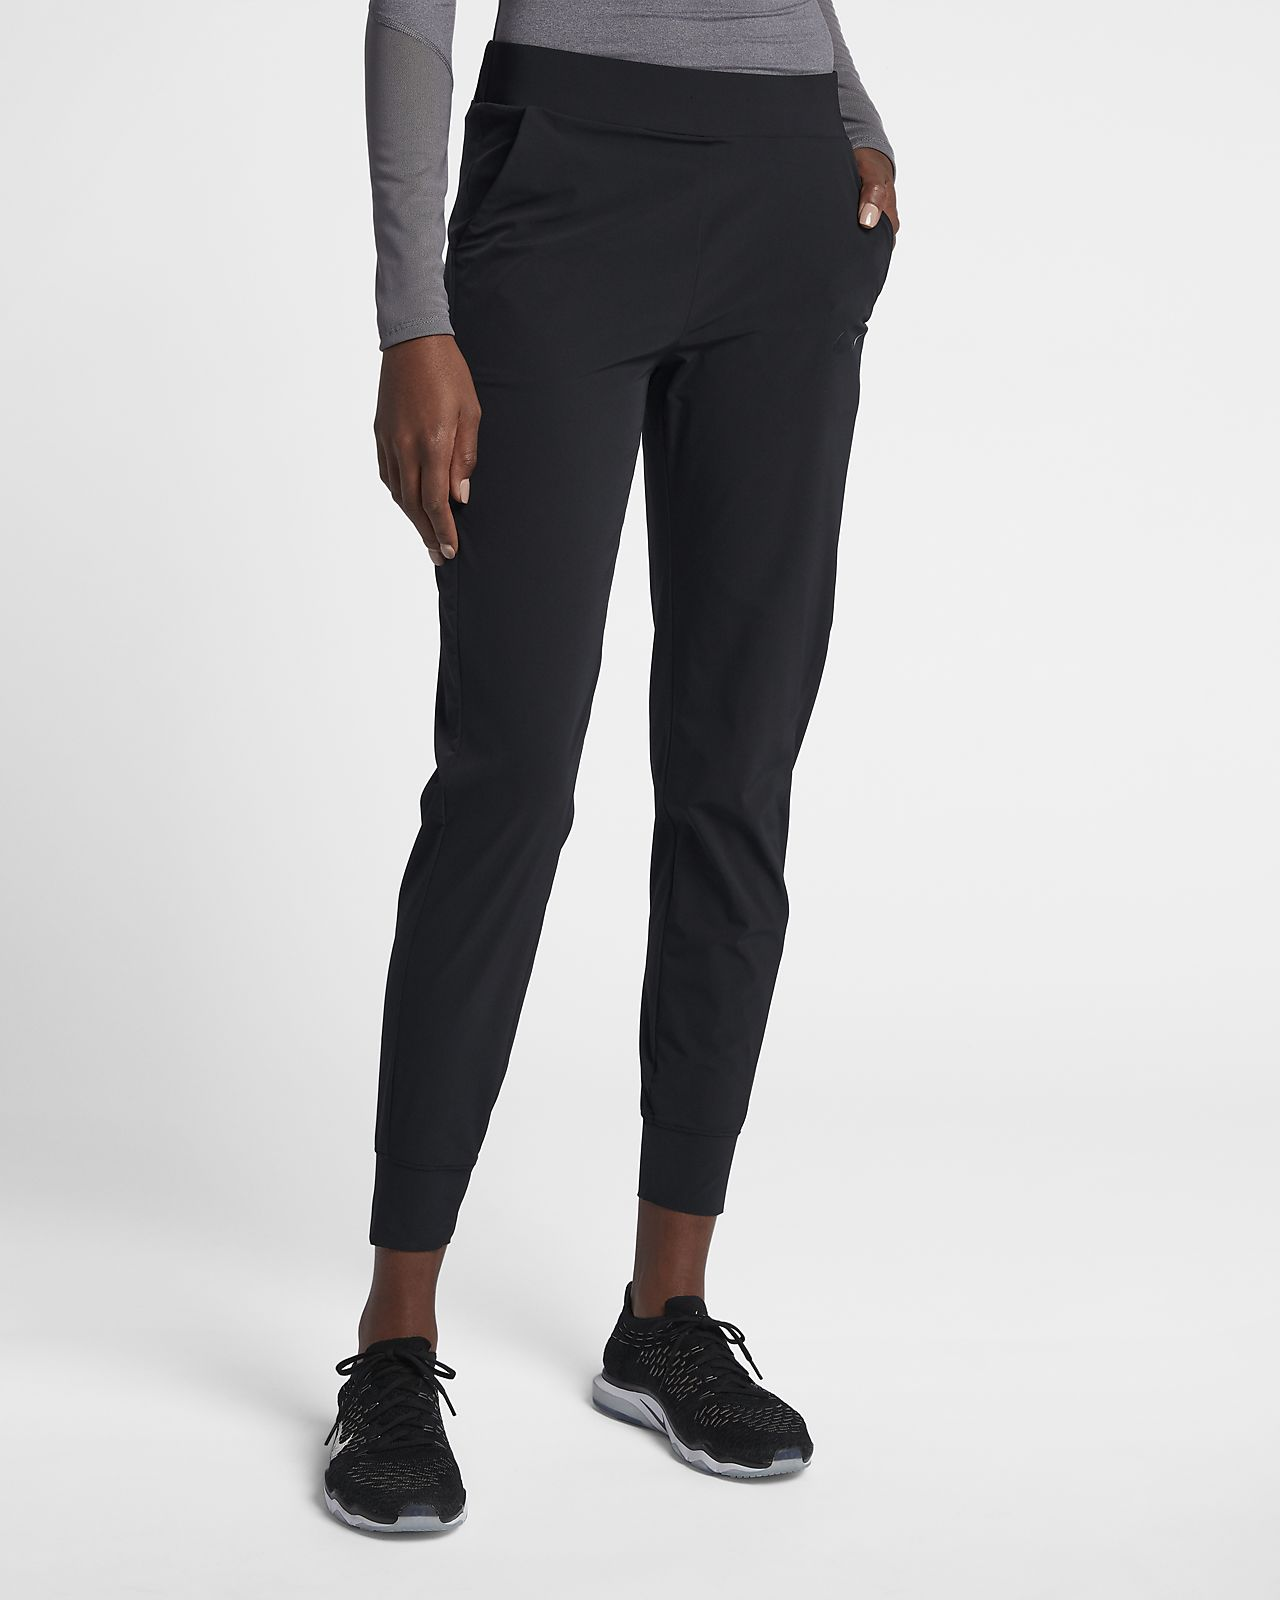 a411a775b379 Nike Bliss Lux Women s Mid-Rise Training Trousers. Nike.com CA